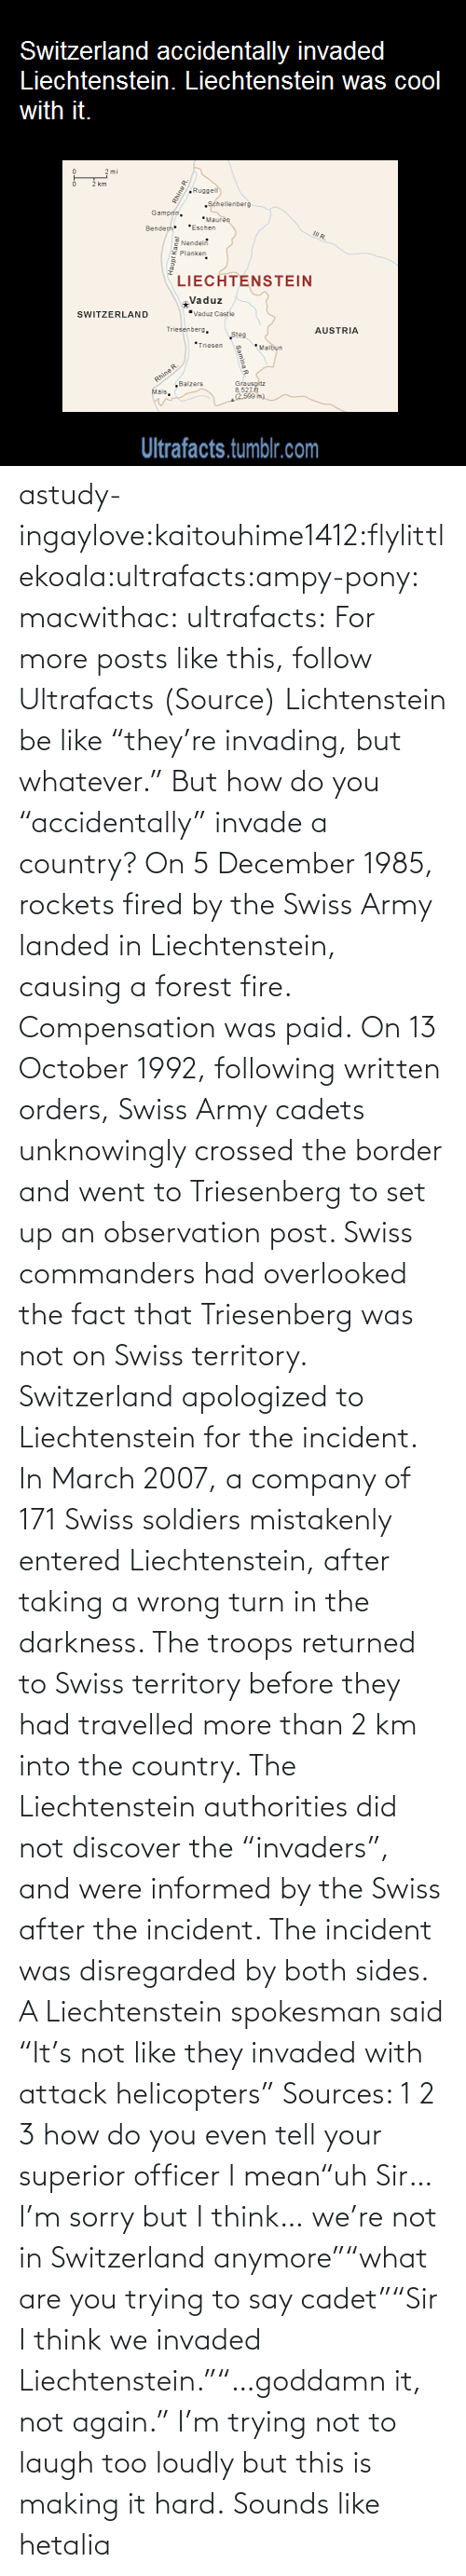 "But Whatever: Switzerland accidentally invaded  Liechtenstein. Liechtenstein was cool  with it.  km  Ruggell  Séhellenberg  Gampfe.  *Maure  *Eschen  Bendern  Nendel  Planken  LIECHTENSTEIN  Vaduz  ""Vaduz Castie  SWITZERLAND  Triesenbers.  AUSTRIA  Steg  *Triesen  *Malbun  Rhine R.  ""Balzers  Mals.  Grausoltz  8,521  2.500 m)  Ultrafacts.tumblr.com  Haupt Kanal  Samina R astudy-ingaylove:kaitouhime1412:flylittlekoala:ultrafacts:ampy-pony:  macwithac:  ultrafacts:  For more posts like this, follow Ultrafacts (Source)  Lichtenstein be like ""they're invading, but whatever.""  But how do you ""accidentally"" invade a country?  On 5 December 1985, rockets fired by the Swiss Army landed in Liechtenstein, causing a forest fire. Compensation was paid. On 13 October 1992, following written orders, Swiss Army cadets unknowingly crossed the border and went to Triesenberg to set up an observation post. Swiss commanders had overlooked the fact that Triesenberg was not on Swiss territory. Switzerland apologized to Liechtenstein for the incident. In March 2007, a company of 171 Swiss soldiers mistakenly entered Liechtenstein, after taking a wrong turn in the darkness. The troops returned to Swiss territory before they had travelled more than 2 km into the country. The Liechtenstein authorities did not discover the ""invaders"", and were informed by the Swiss after the incident. The incident was disregarded by both sides. A Liechtenstein spokesman said ""It's not like they invaded with attack helicopters"" Sources: 1 2 3  how do you even tell your superior officer I mean""uh Sir… I'm sorry but I think… we're not in Switzerland anymore""""what are you trying to say cadet""""Sir I think we invaded Liechtenstein.""""…goddamn it, not again.""  I'm trying not to laugh too loudly but this is making it hard.   Sounds like hetalia"